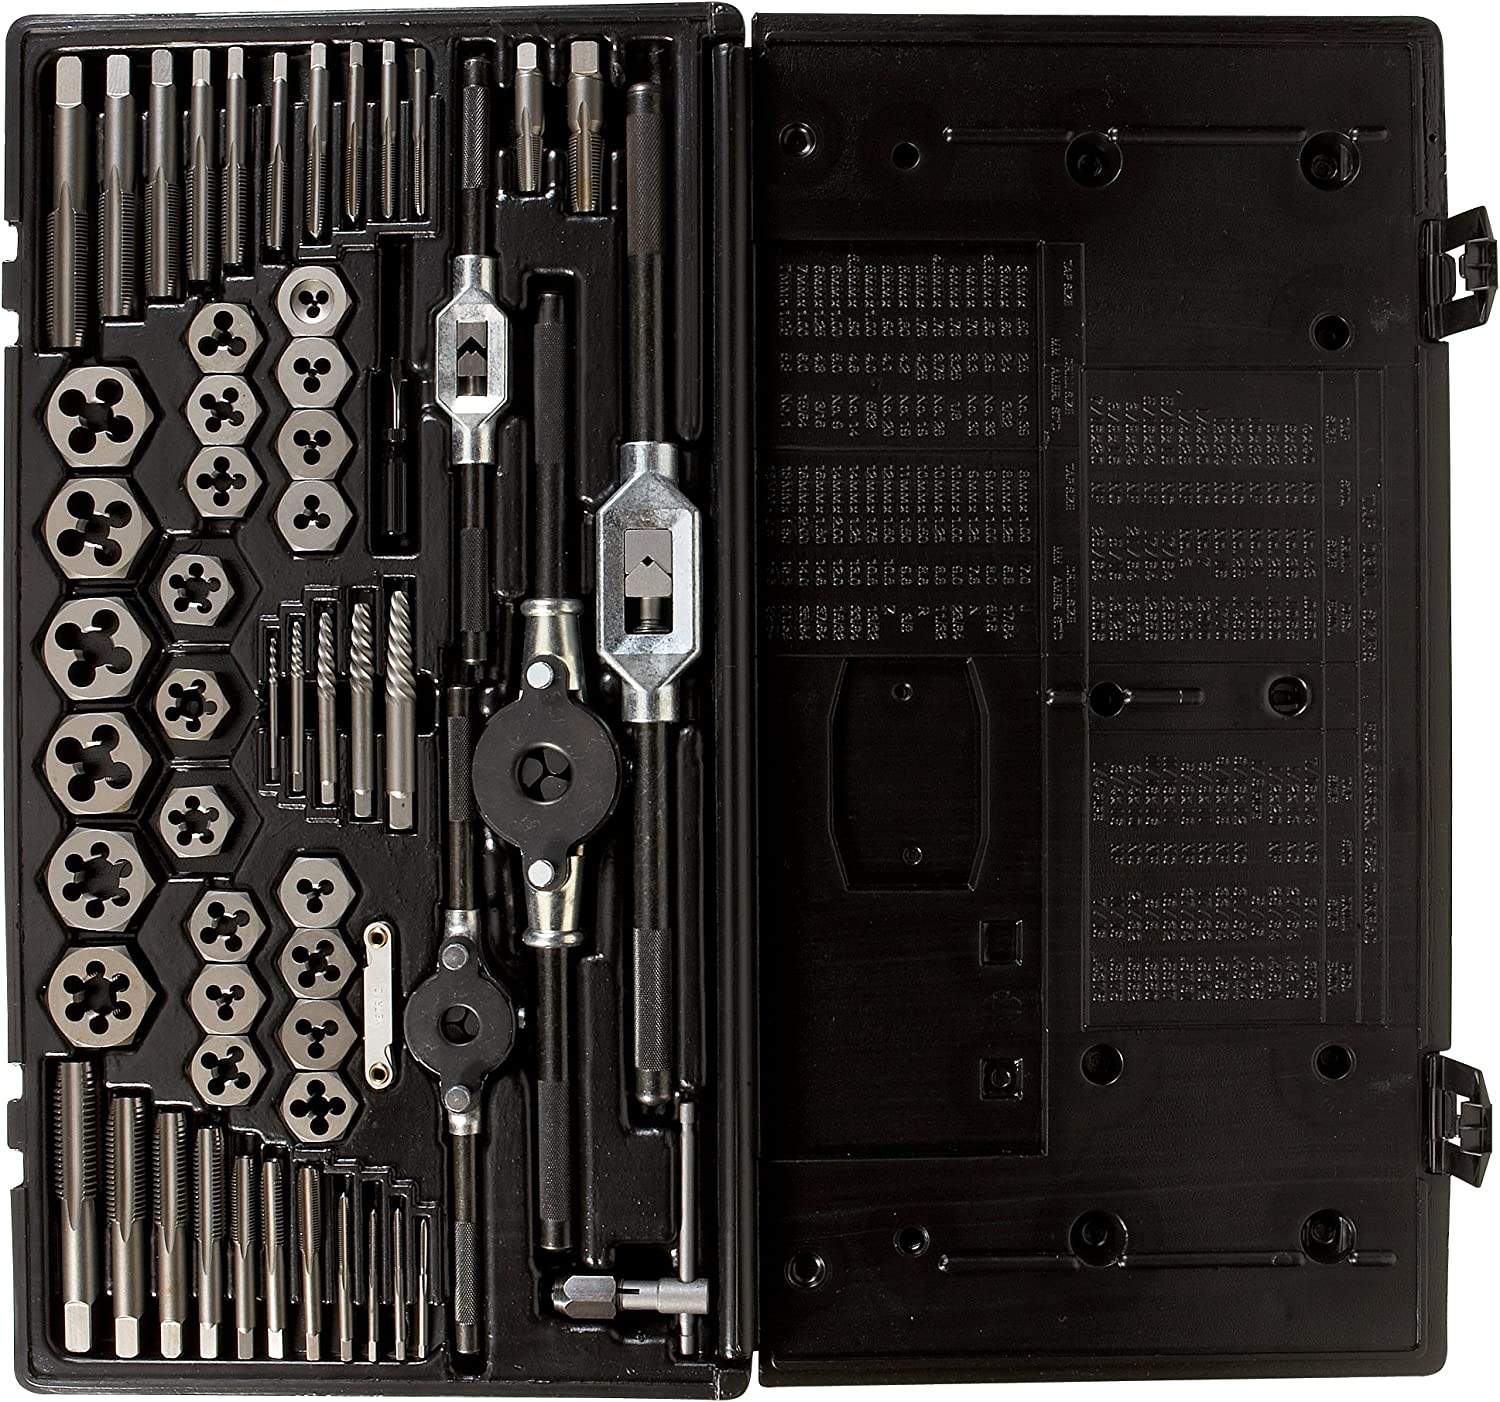 Vermont American 21750 58-Piece Professional Tap and Die Set with Plastic Case